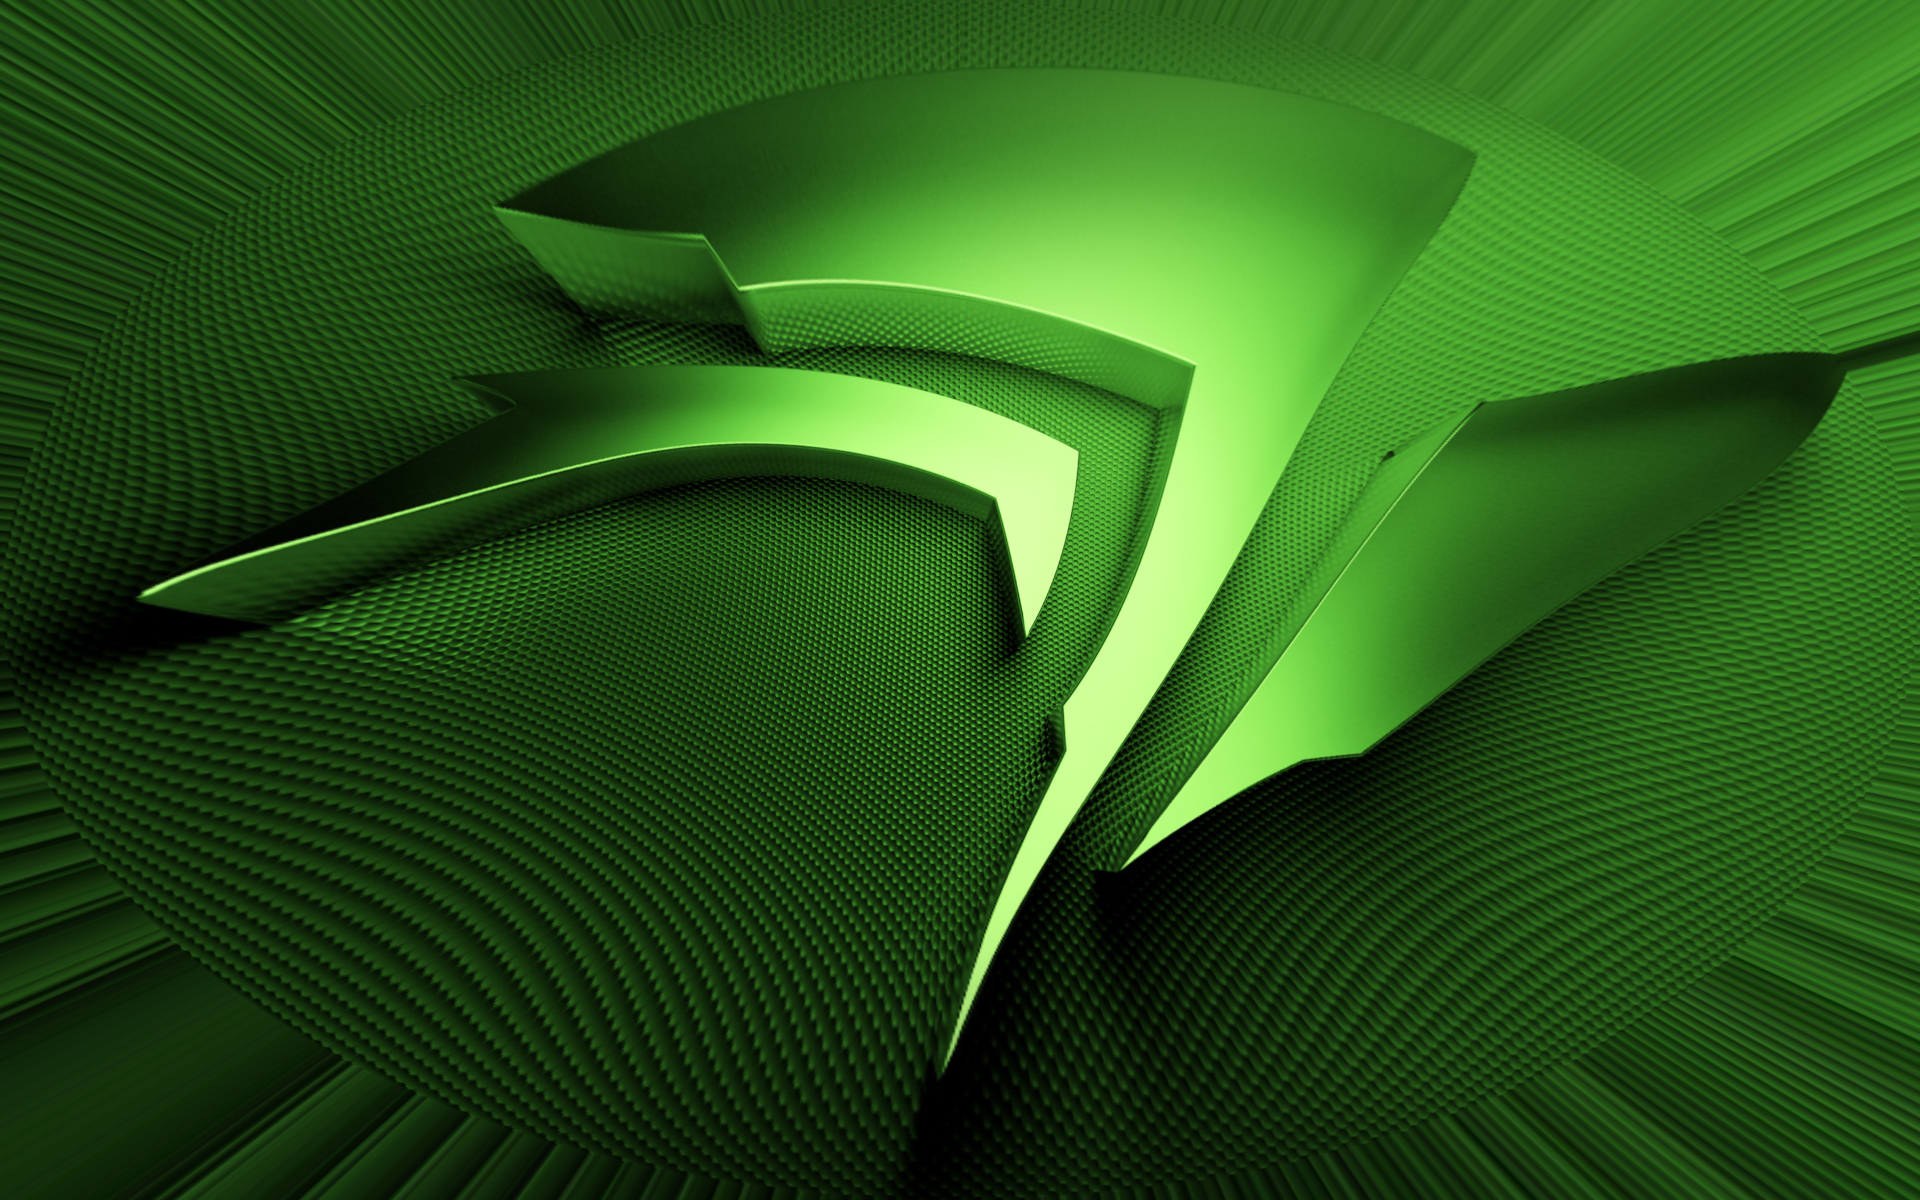 Technology - Nvidia  Wallpaper